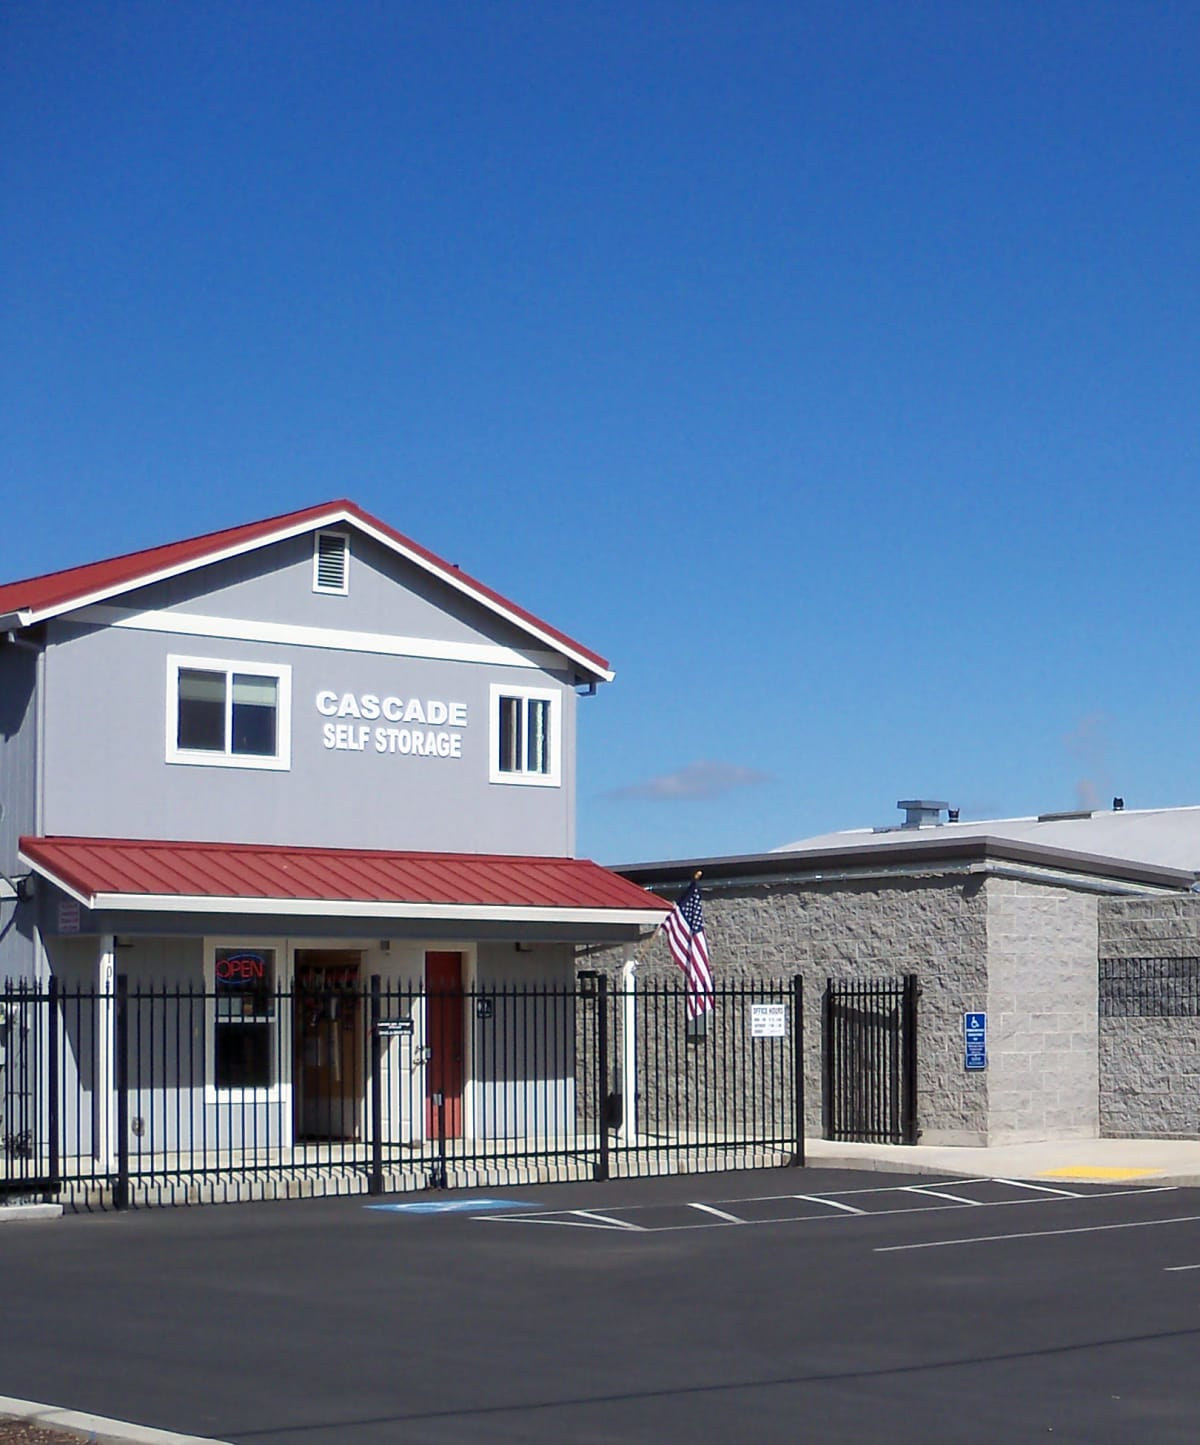 Cascade Self Storage in Medford, Oregon